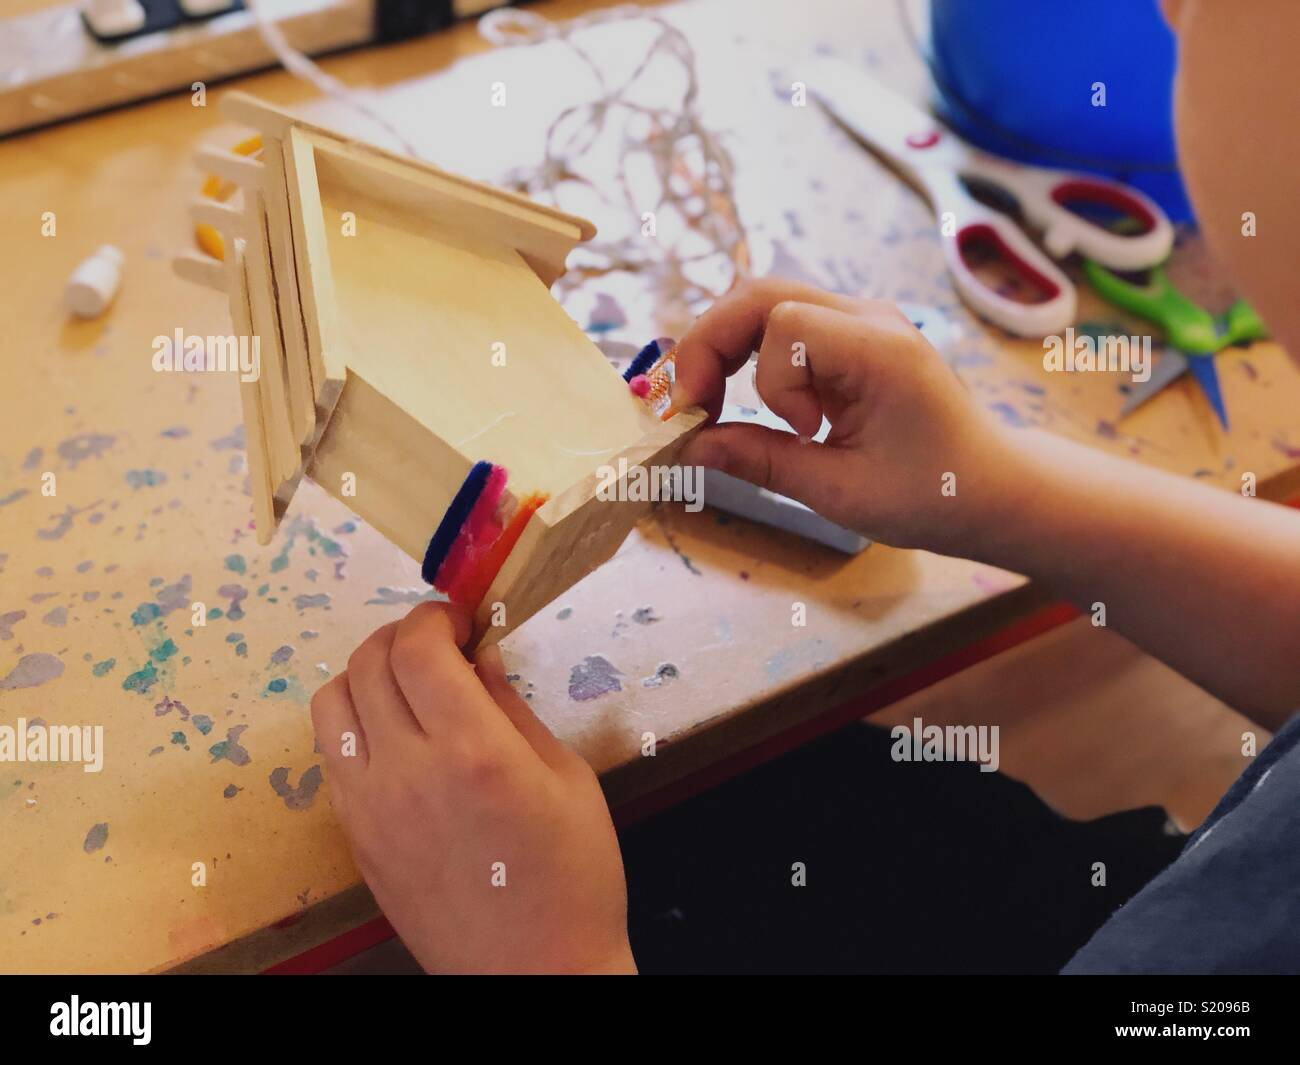 Boy crafting focus on hands - Stock Image